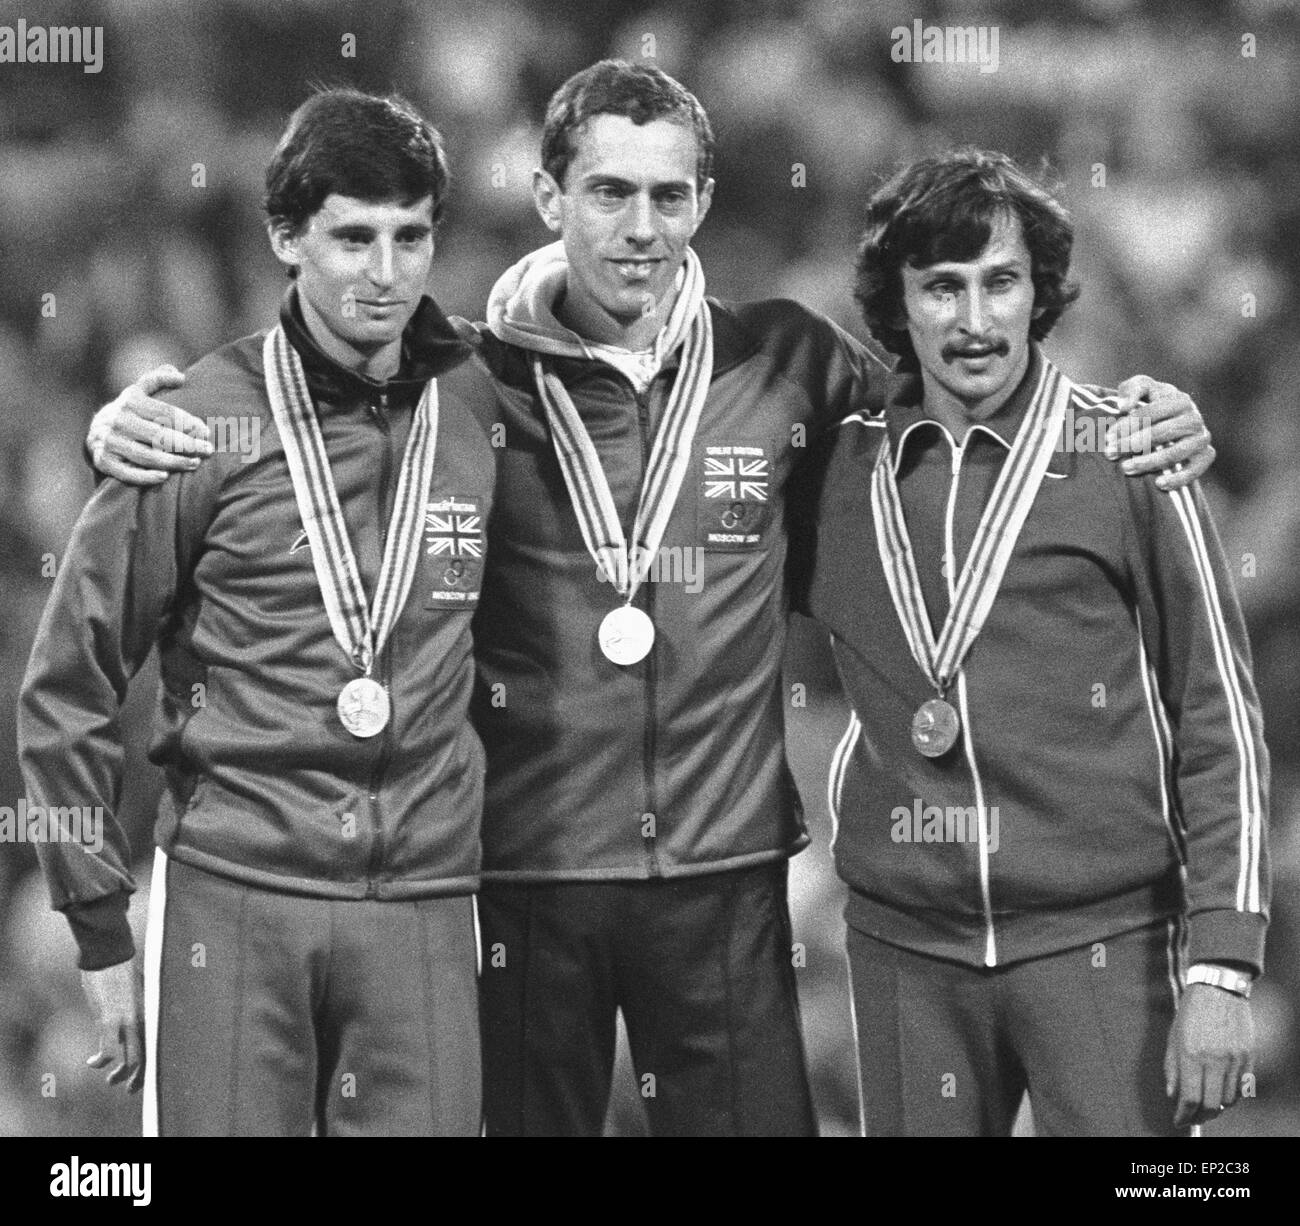 Steve Ovett winner of the 800 metre at the 1980 Moscow Olympic Games during the medal ceremony at the Olympic stadium - Stock Image